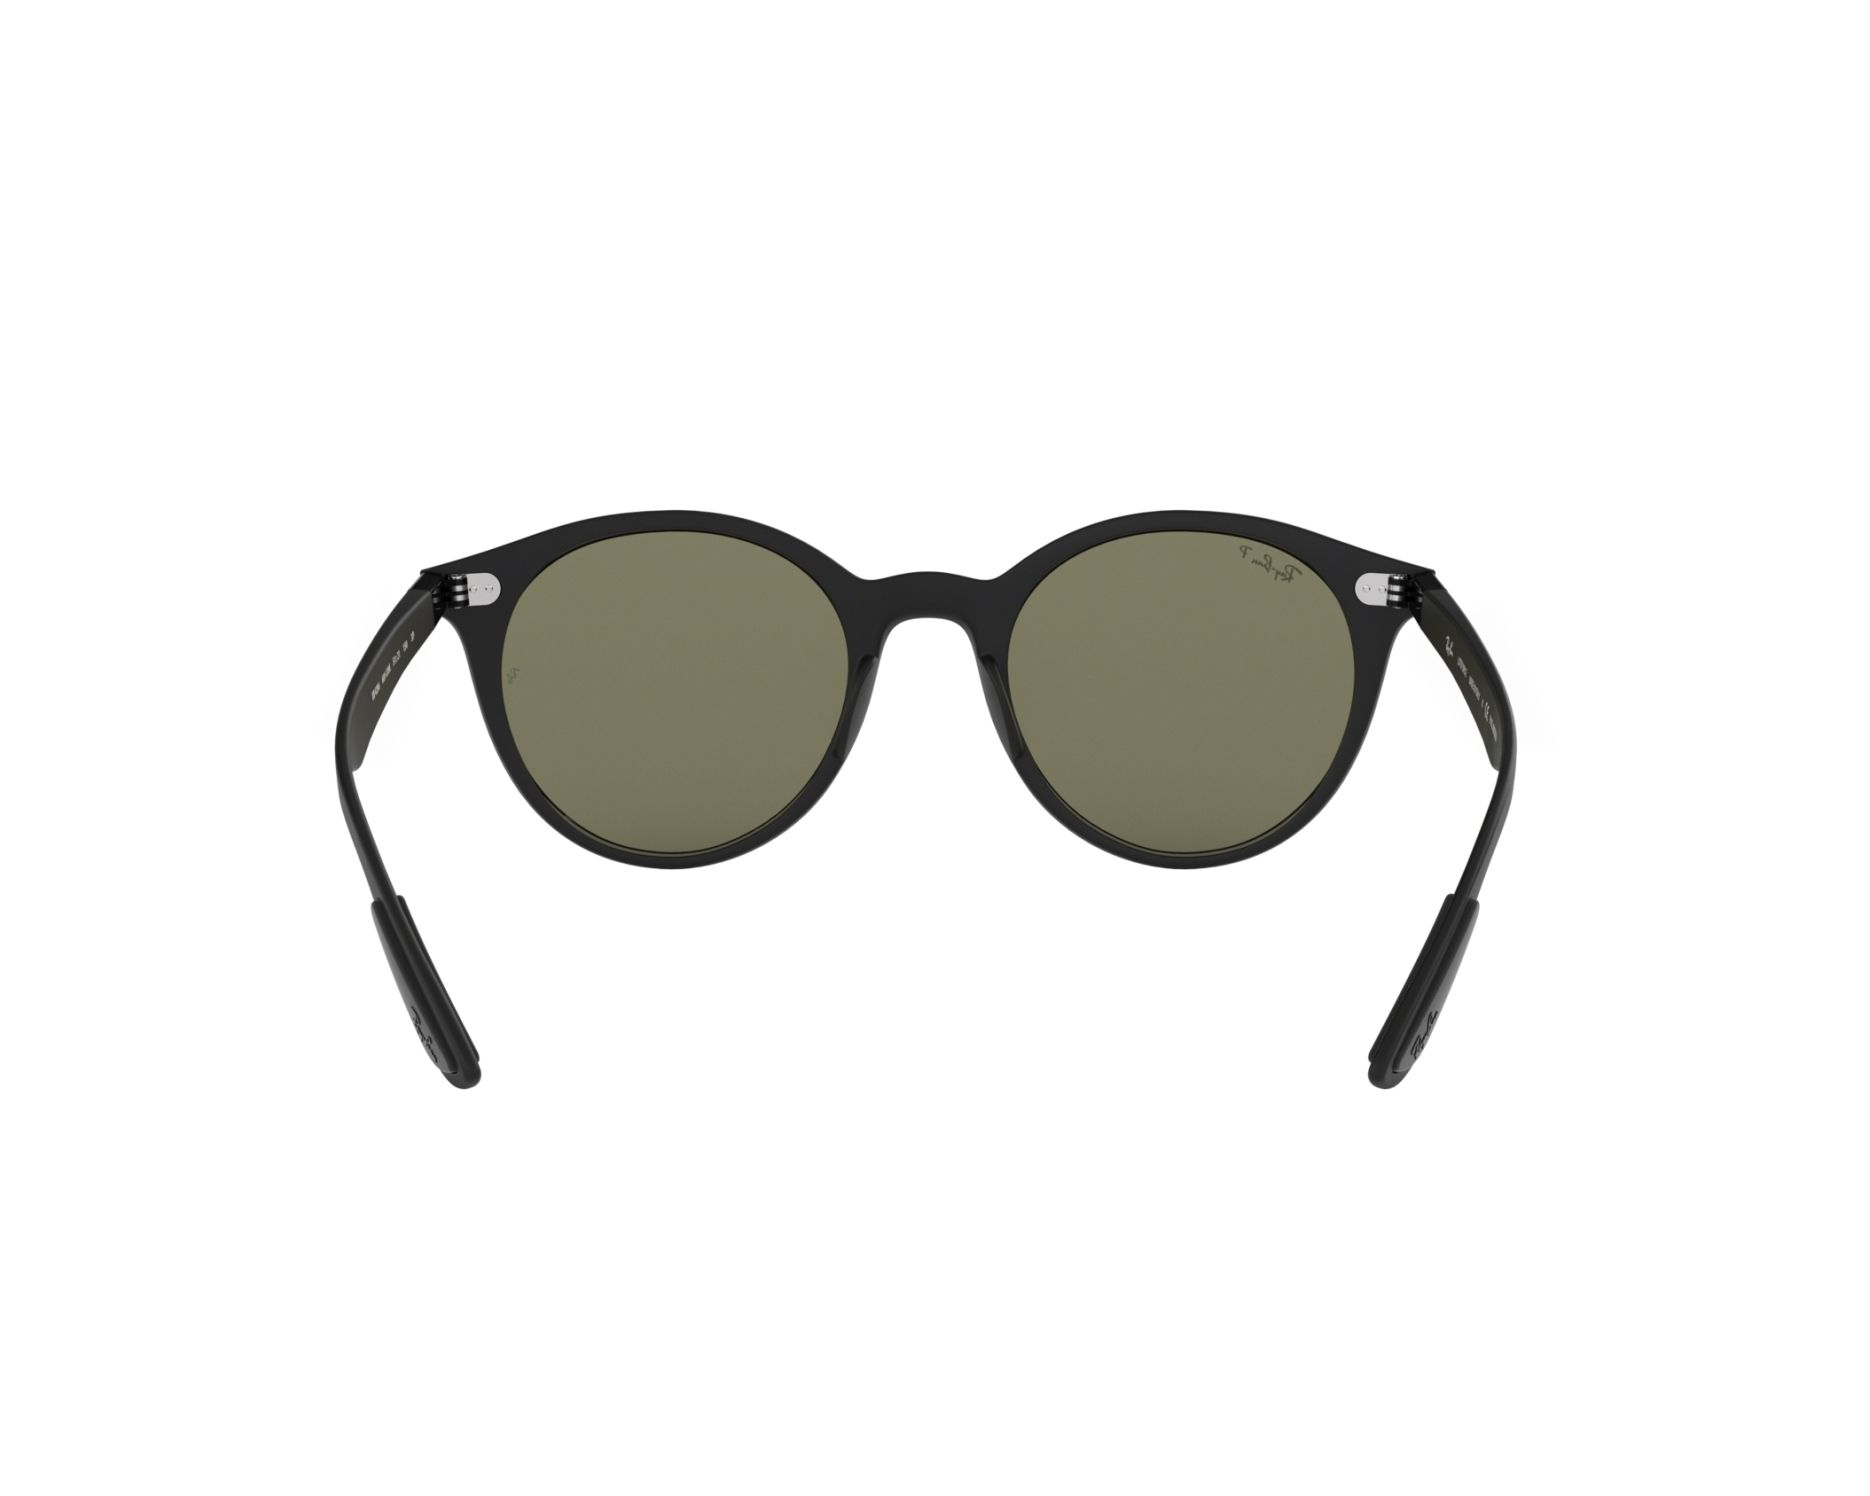 47f6ce5c19 Sunglasses Ray-Ban RB-4296 601S9A 51-21 Black 360 degree view 7